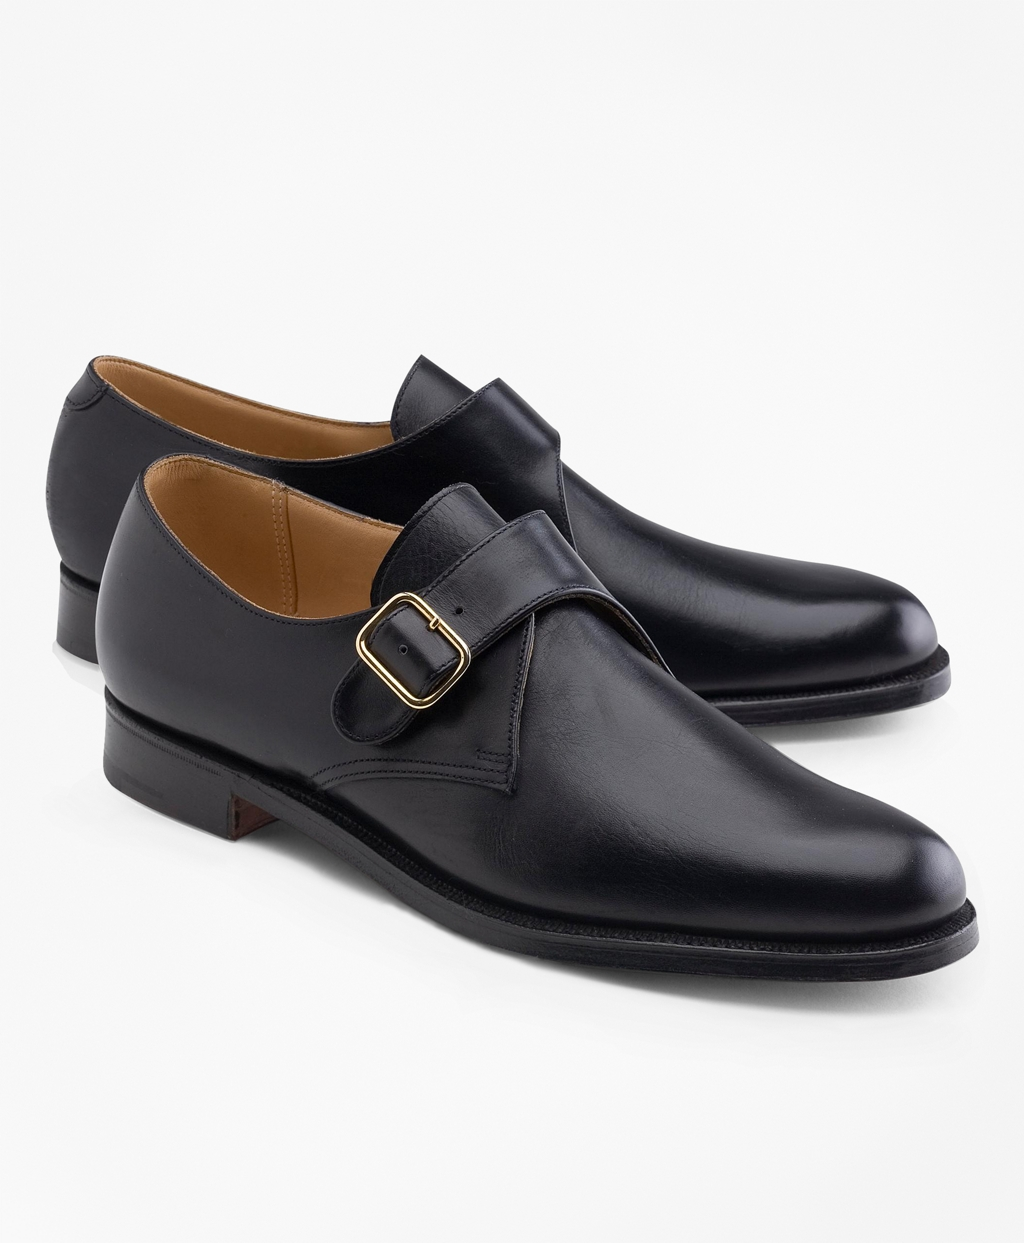 Mens Vintage Style Shoes & Boots| Retro Classic Shoes Brooks Brothers Mens Peal  Co. Monk Straps $648.00 AT vintagedancer.com